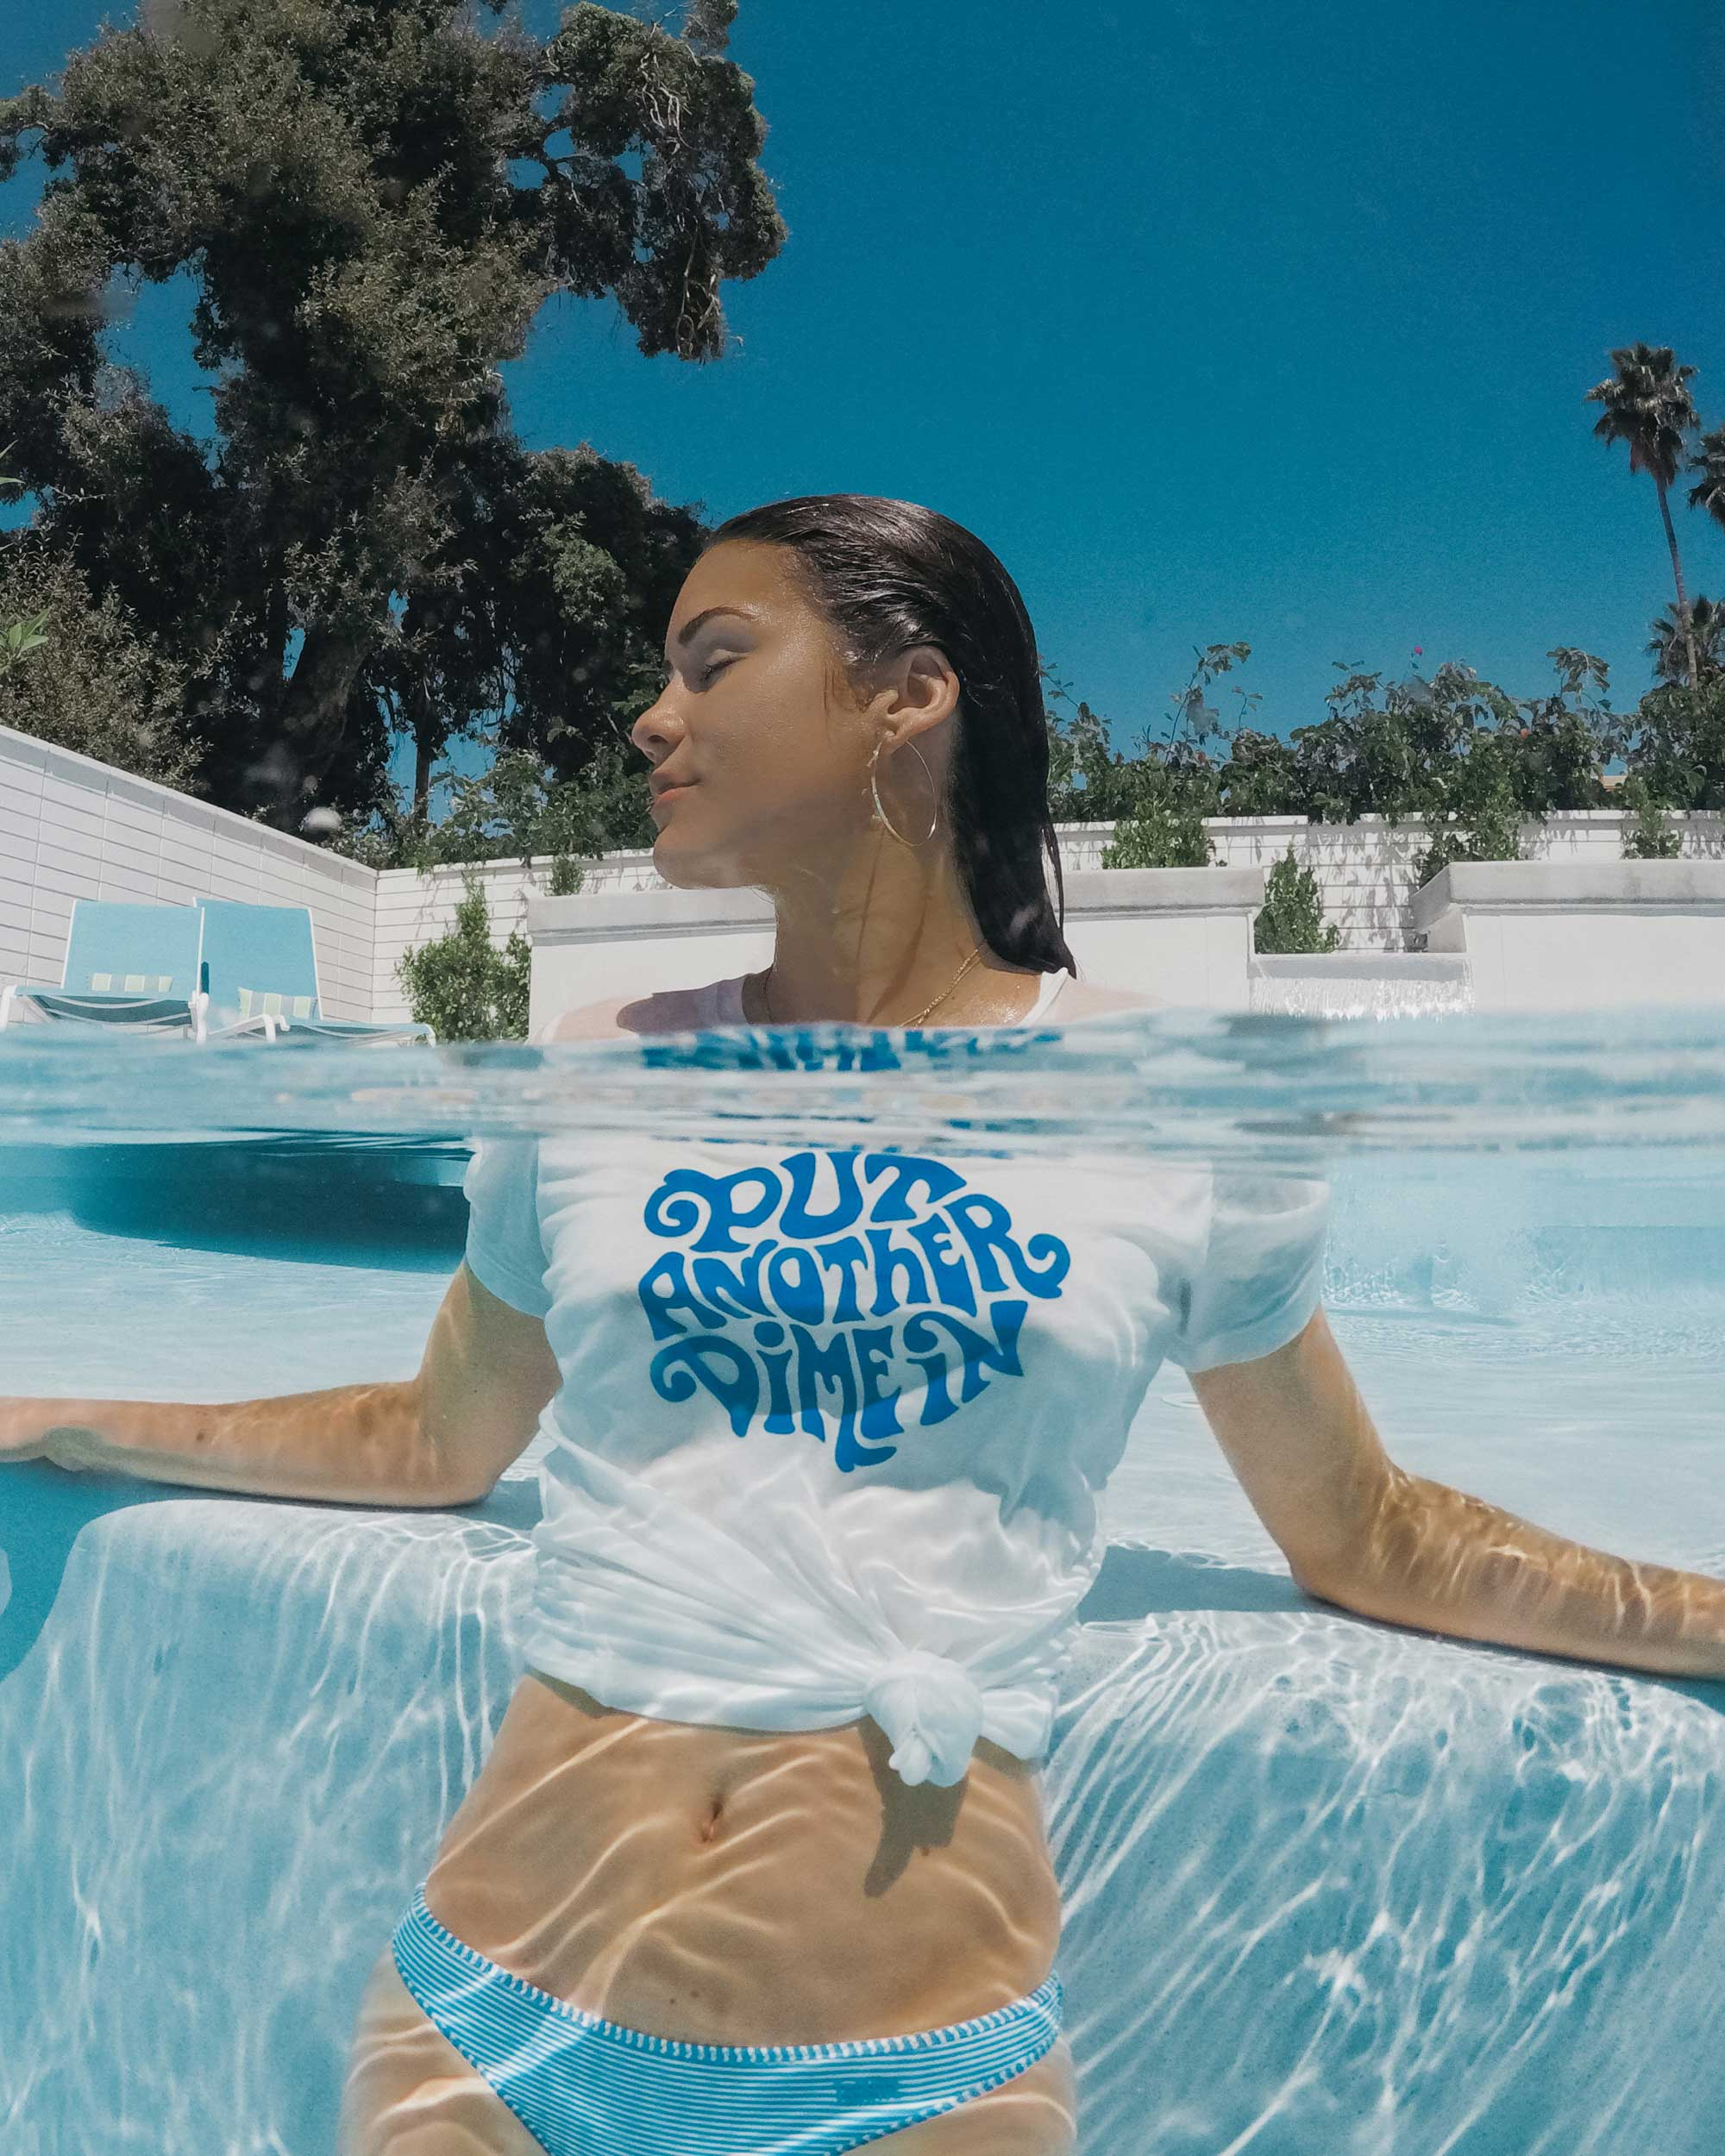 graphic tshirt with swimsuit pool outfit12.jpg